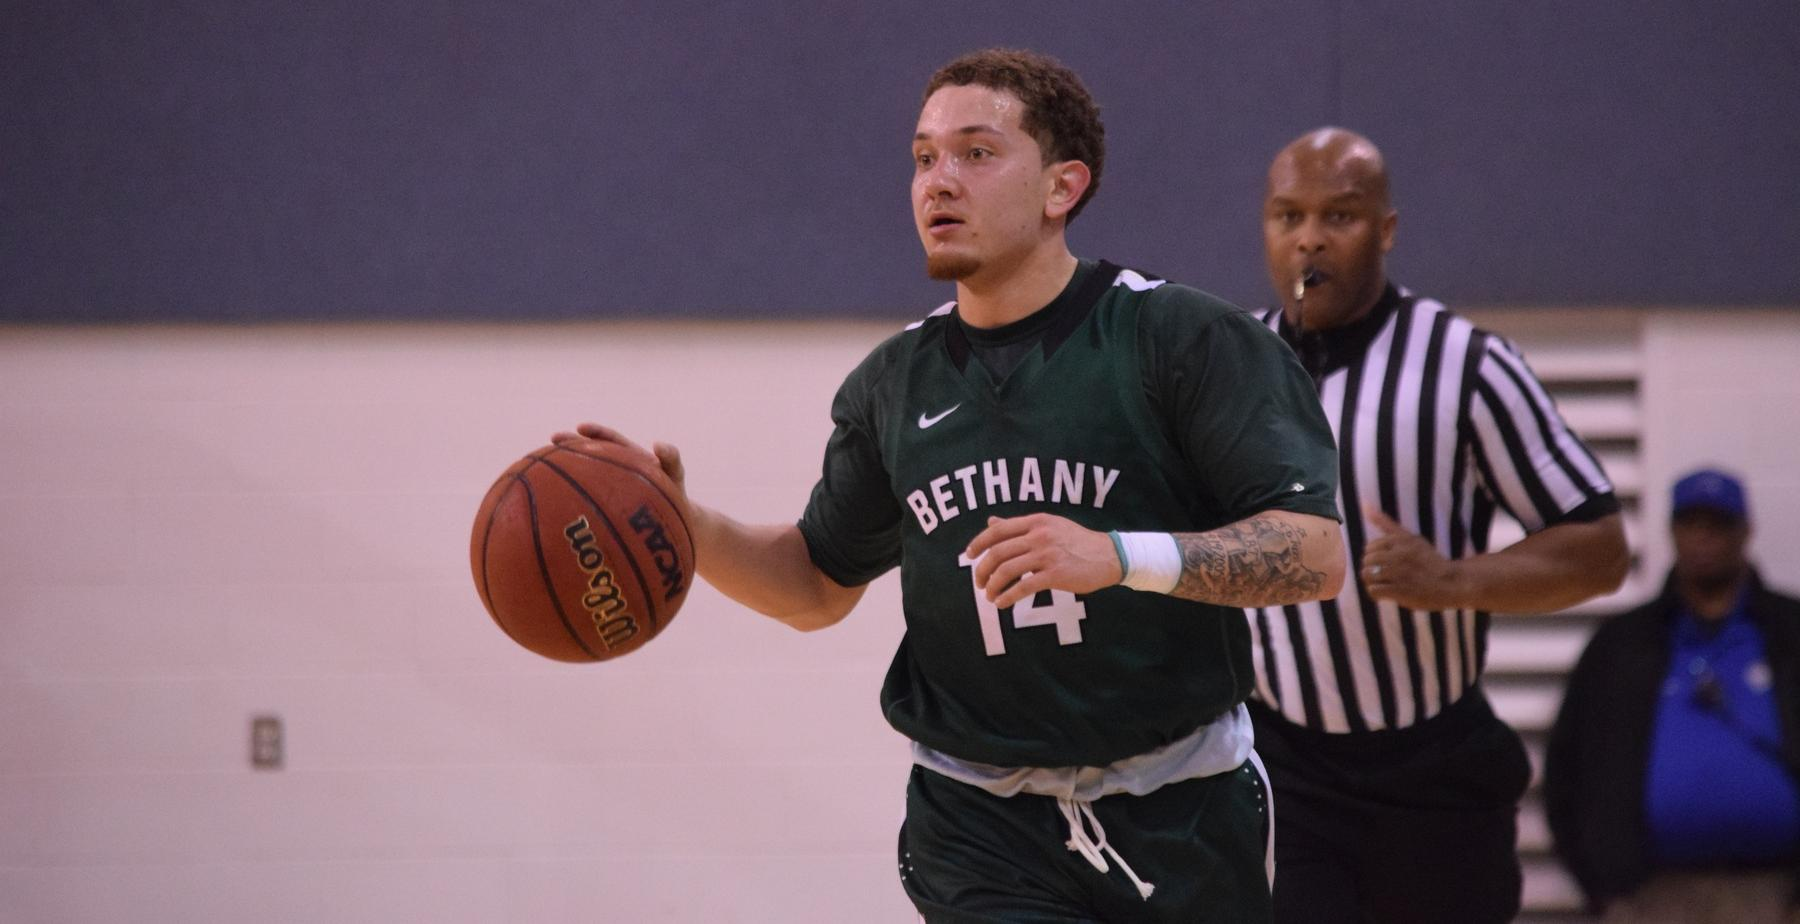 Bethany suffers a 71-58 loss to Juniata